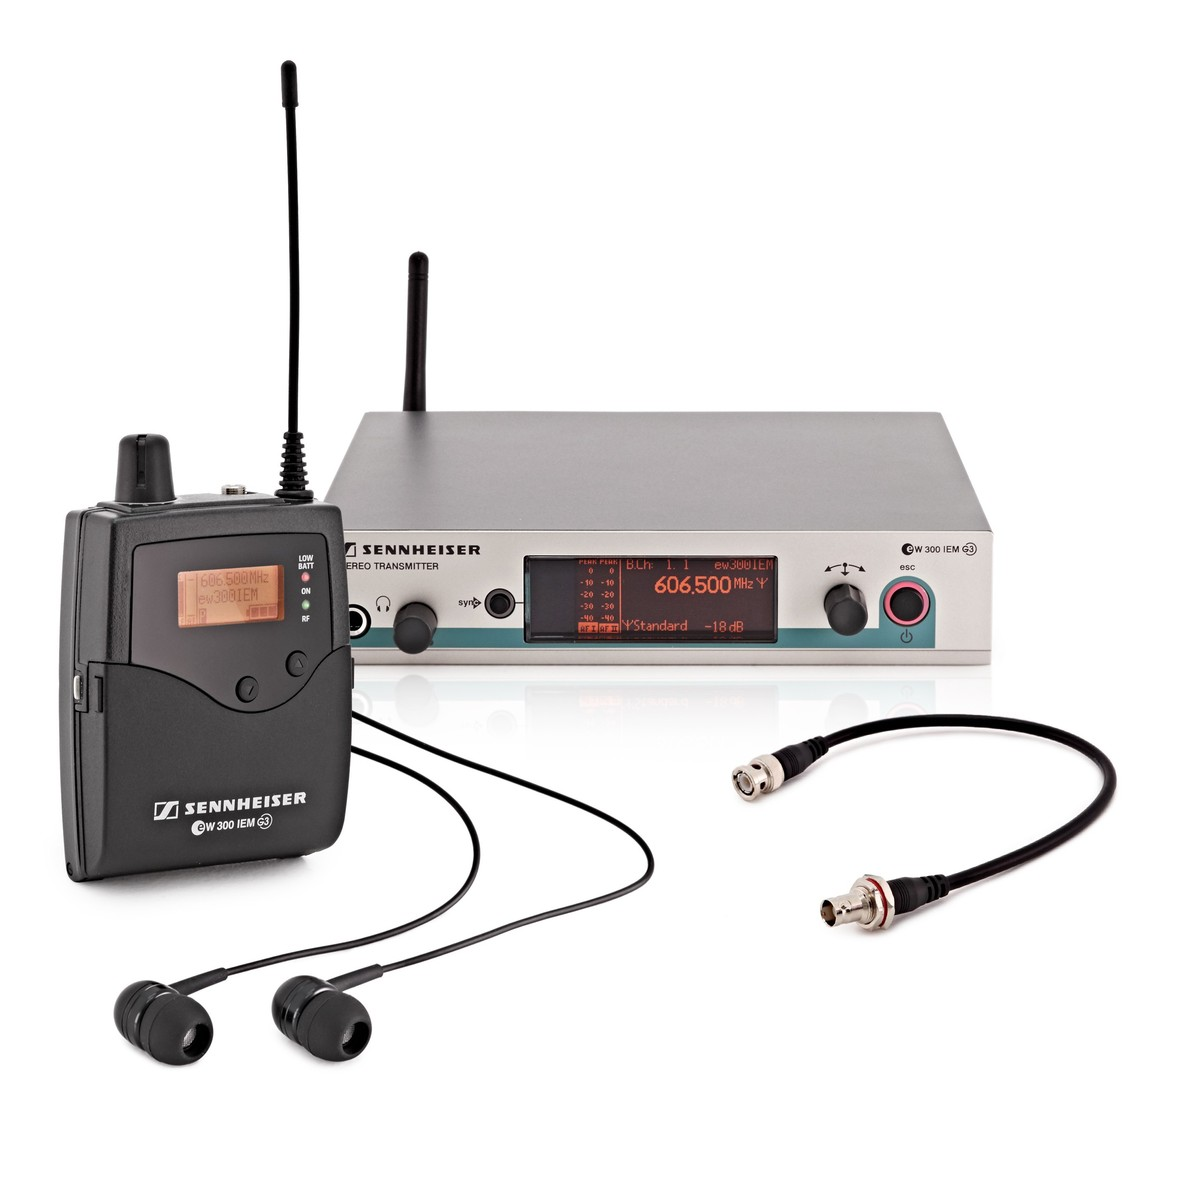 sennheiser ew 300 iem g3 e wireless in ear monitor system at gear4music. Black Bedroom Furniture Sets. Home Design Ideas